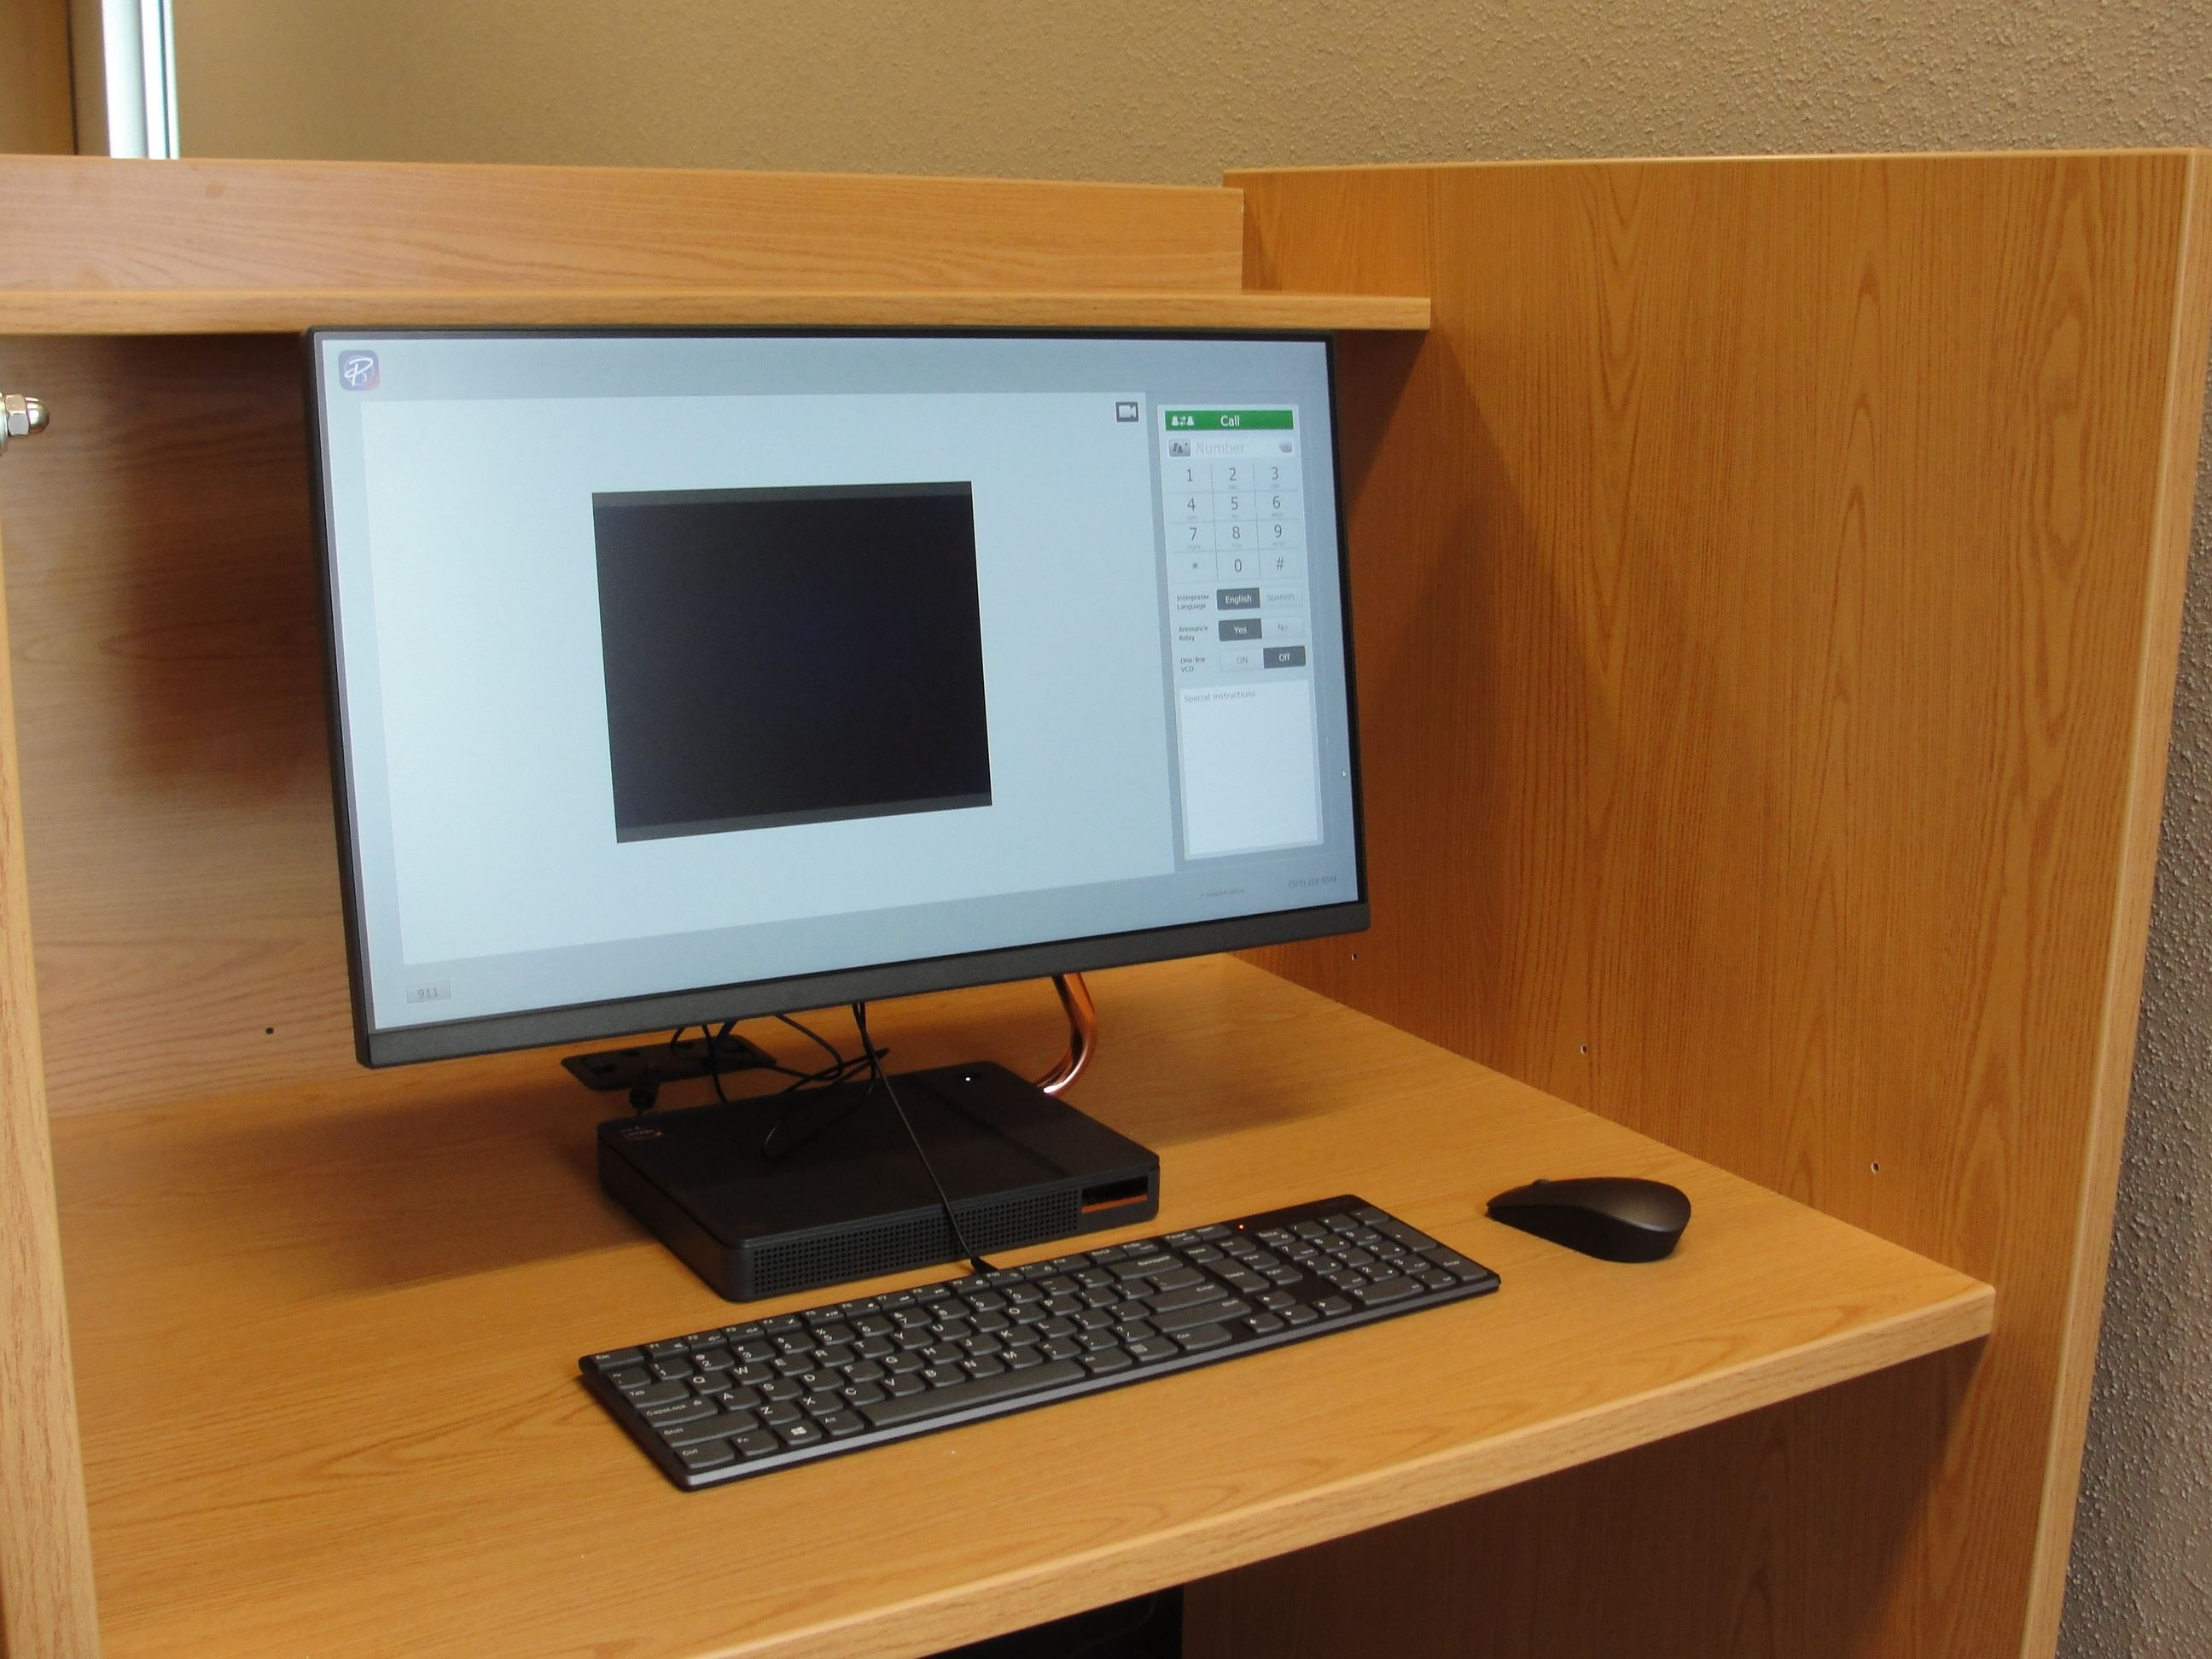 The Video Relay Service computer sitting on a desk at the library.